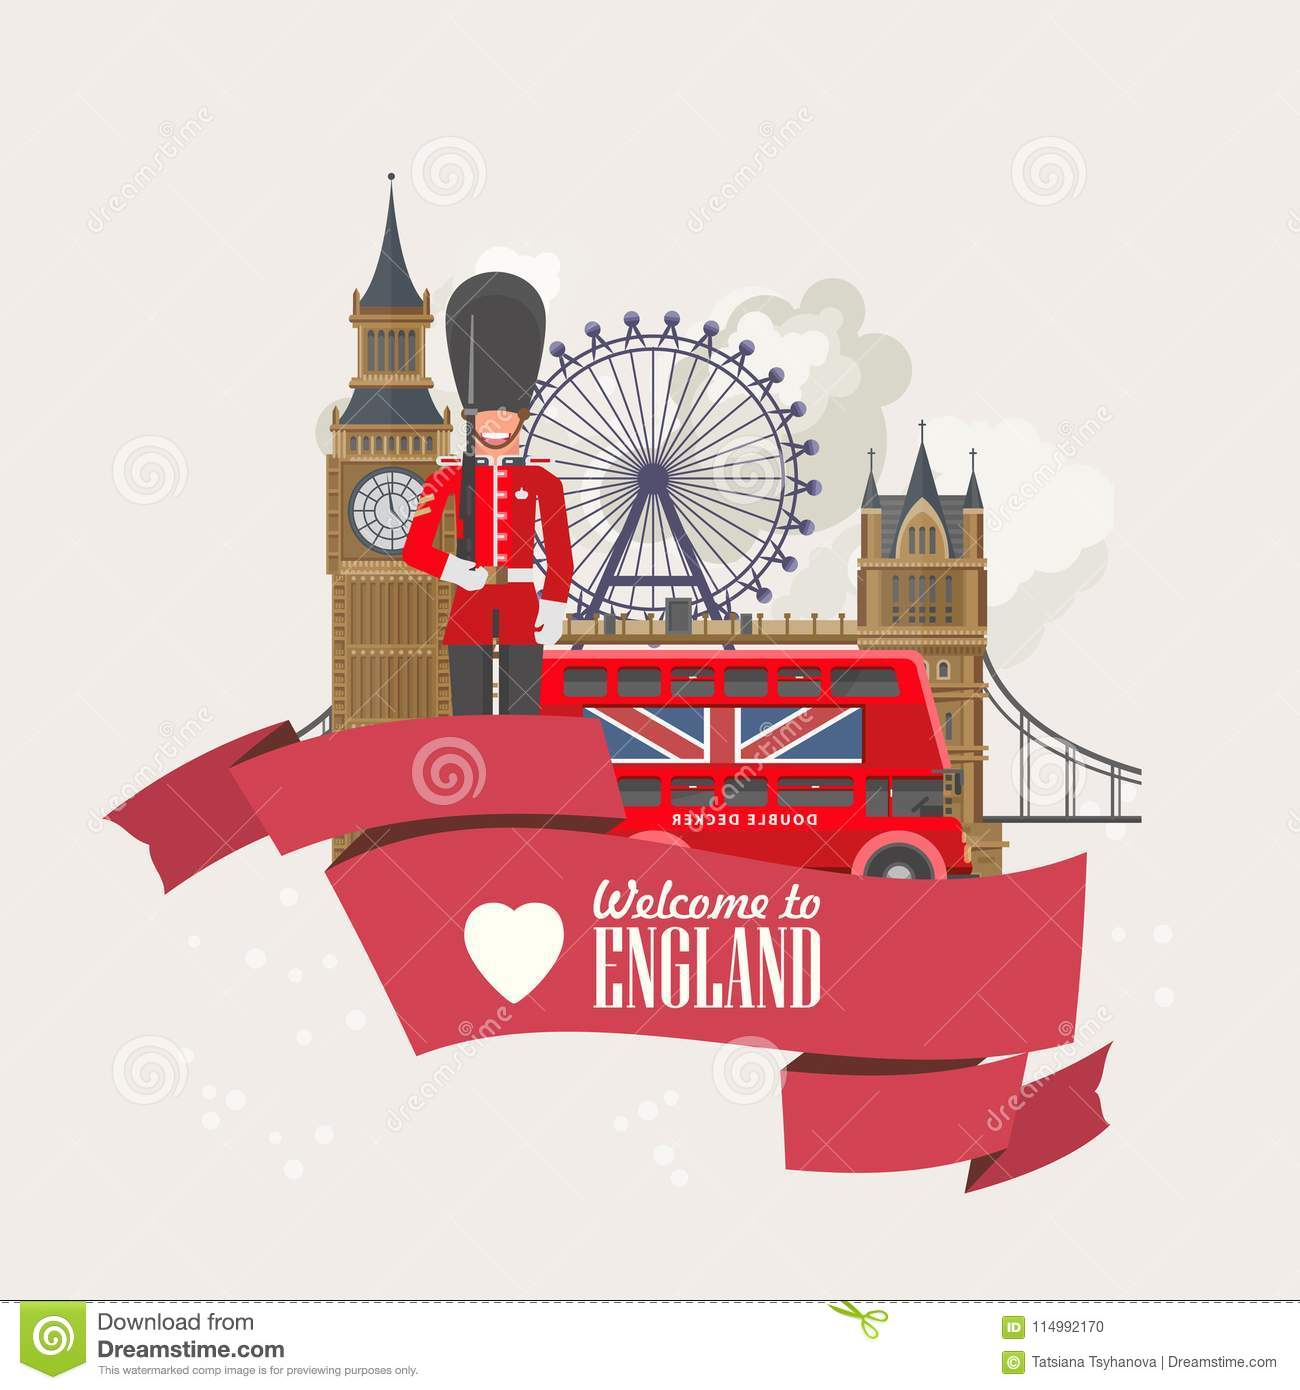 England travel vector illustration with London Eye. Vacation in United Kingdom. Great Britain background. Journey to the UK.